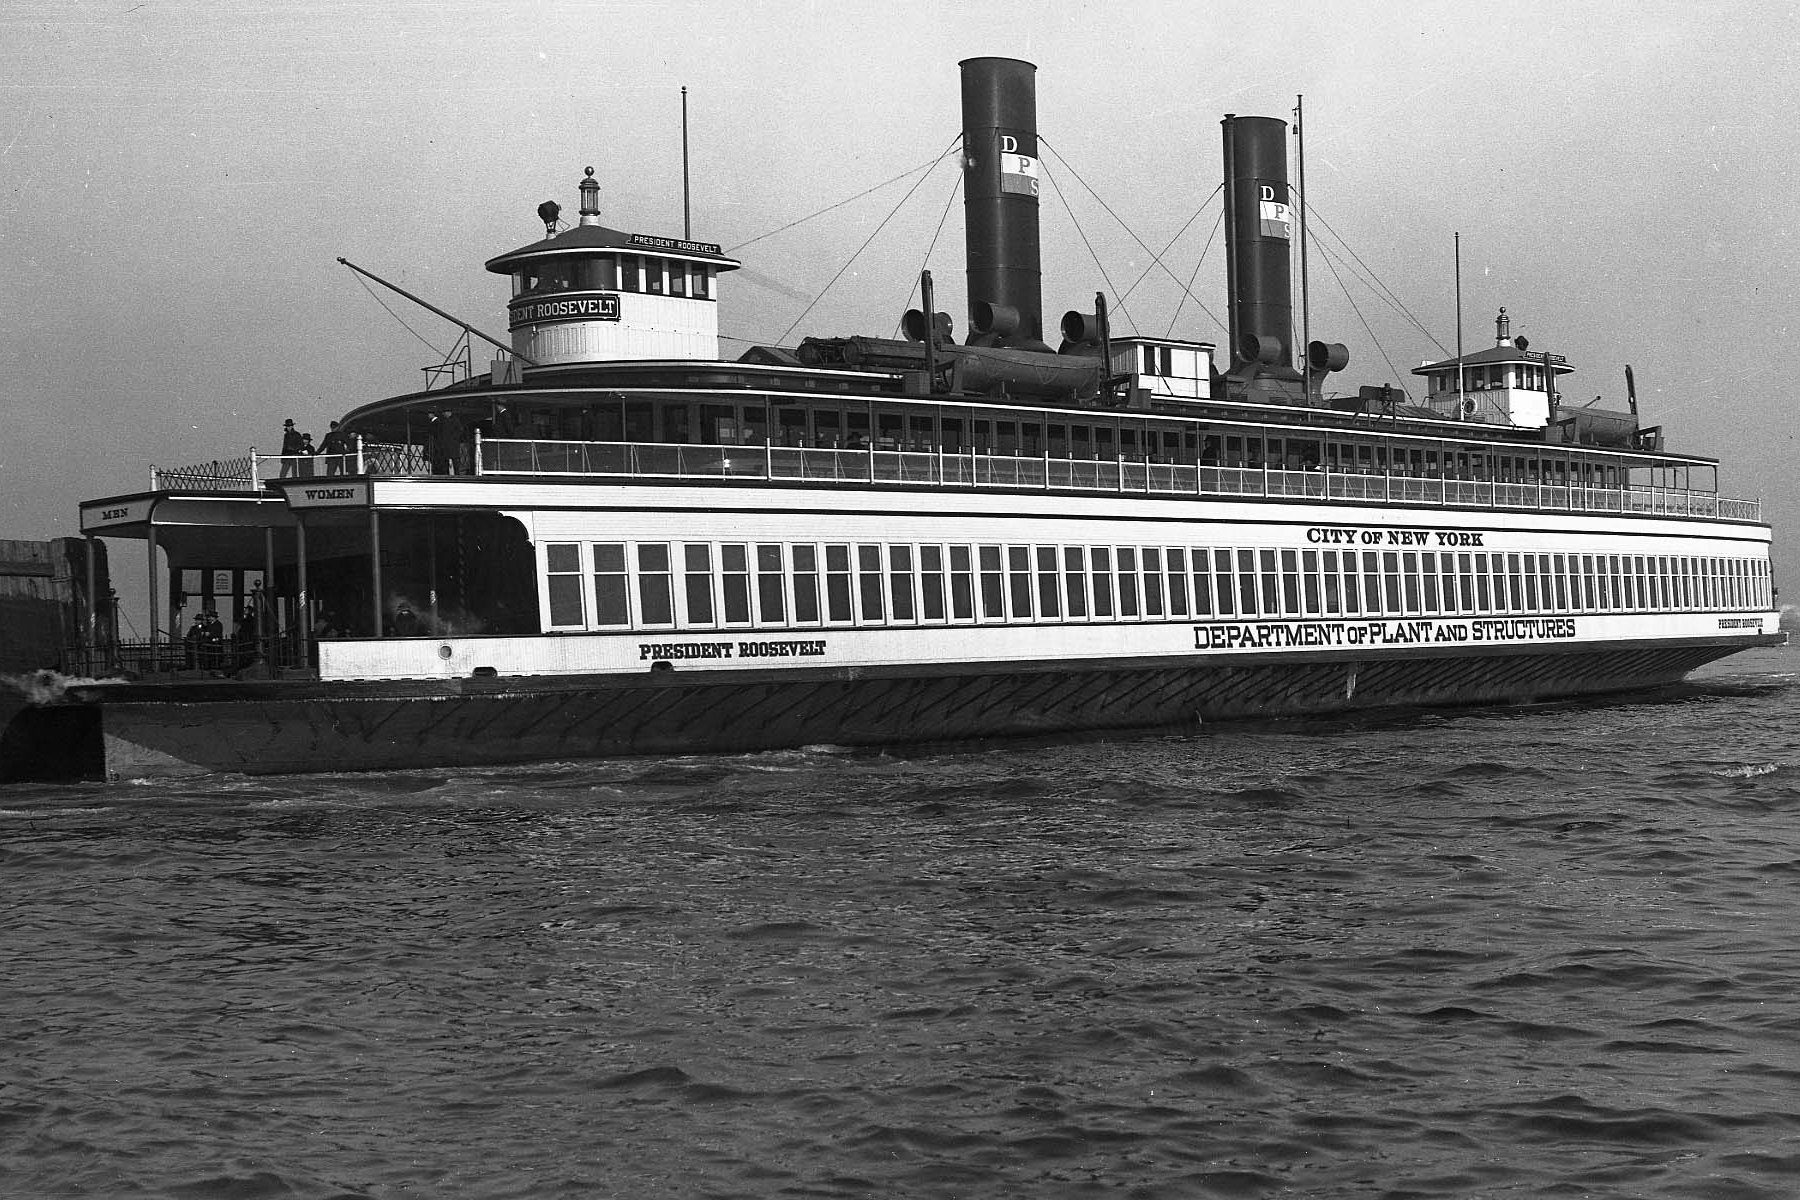 Book color line ferry - When Staten Island Became Part Of New York City Local Government Took A Controlling Stake In The Line Before Fully Owning It By 1904 Leone Explained